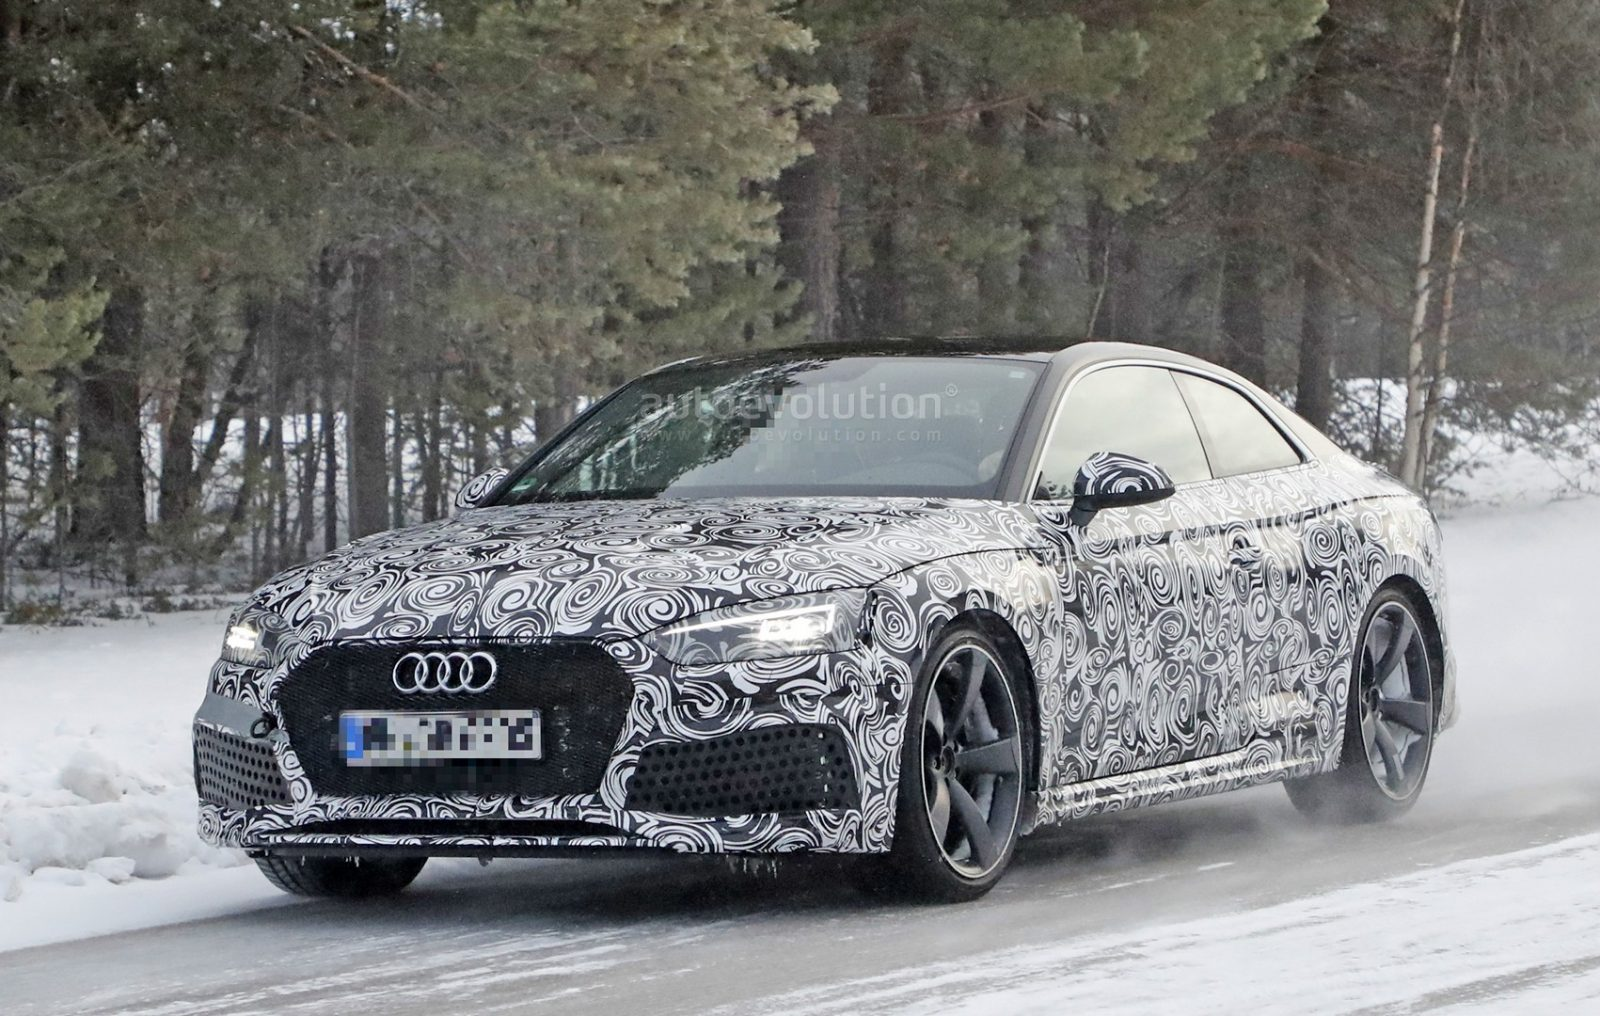 2018-audi-rs5-coupe-winter-testing-with-450-hp-600-nm-twin-turbo-v6-115149_1